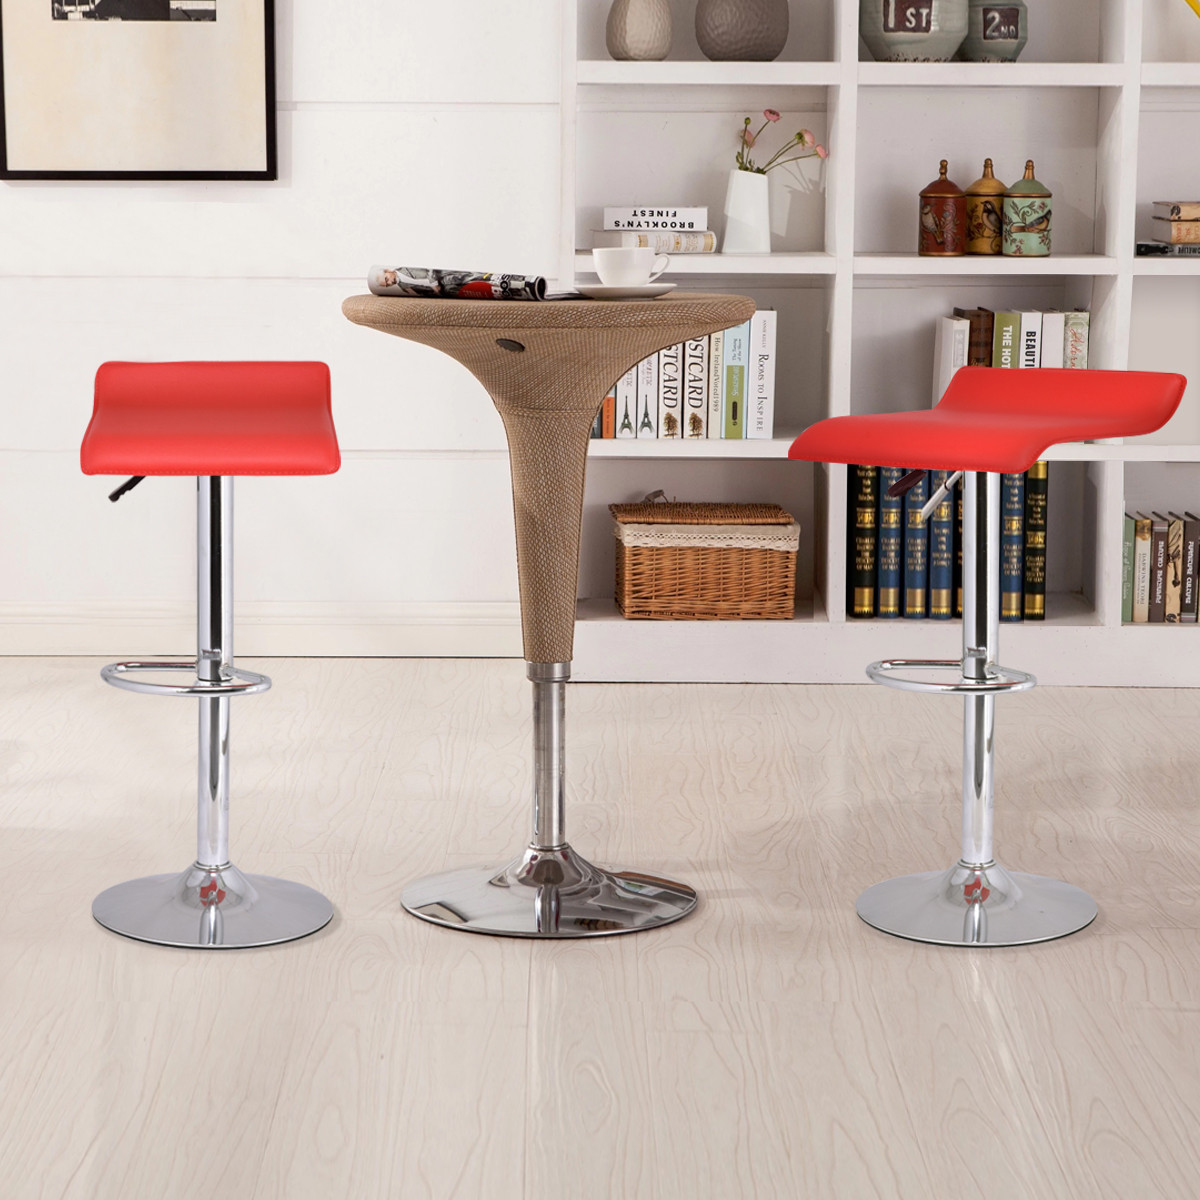 Admirable Details About Set Of 2 Modern Bar Stools Dinning Counter Chairs Durable Wear Resistant Gmtry Best Dining Table And Chair Ideas Images Gmtryco